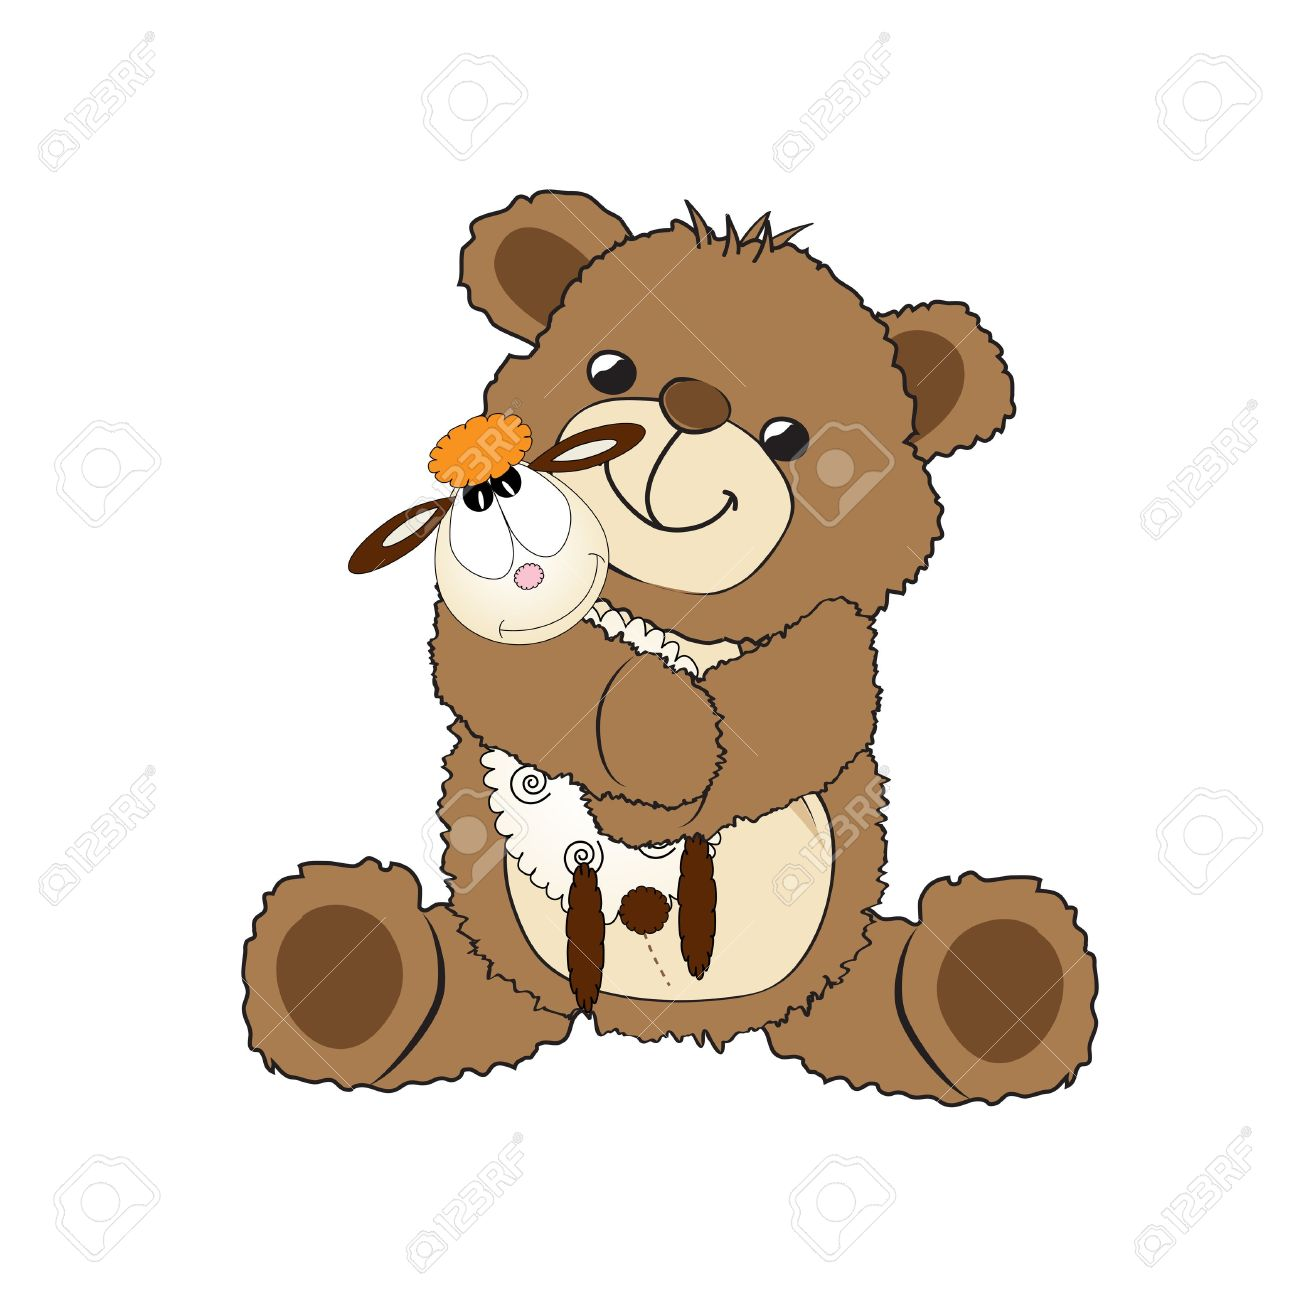 teddy bear playing with his toy, a little sheep,  illustration Stock Vector - 18001650